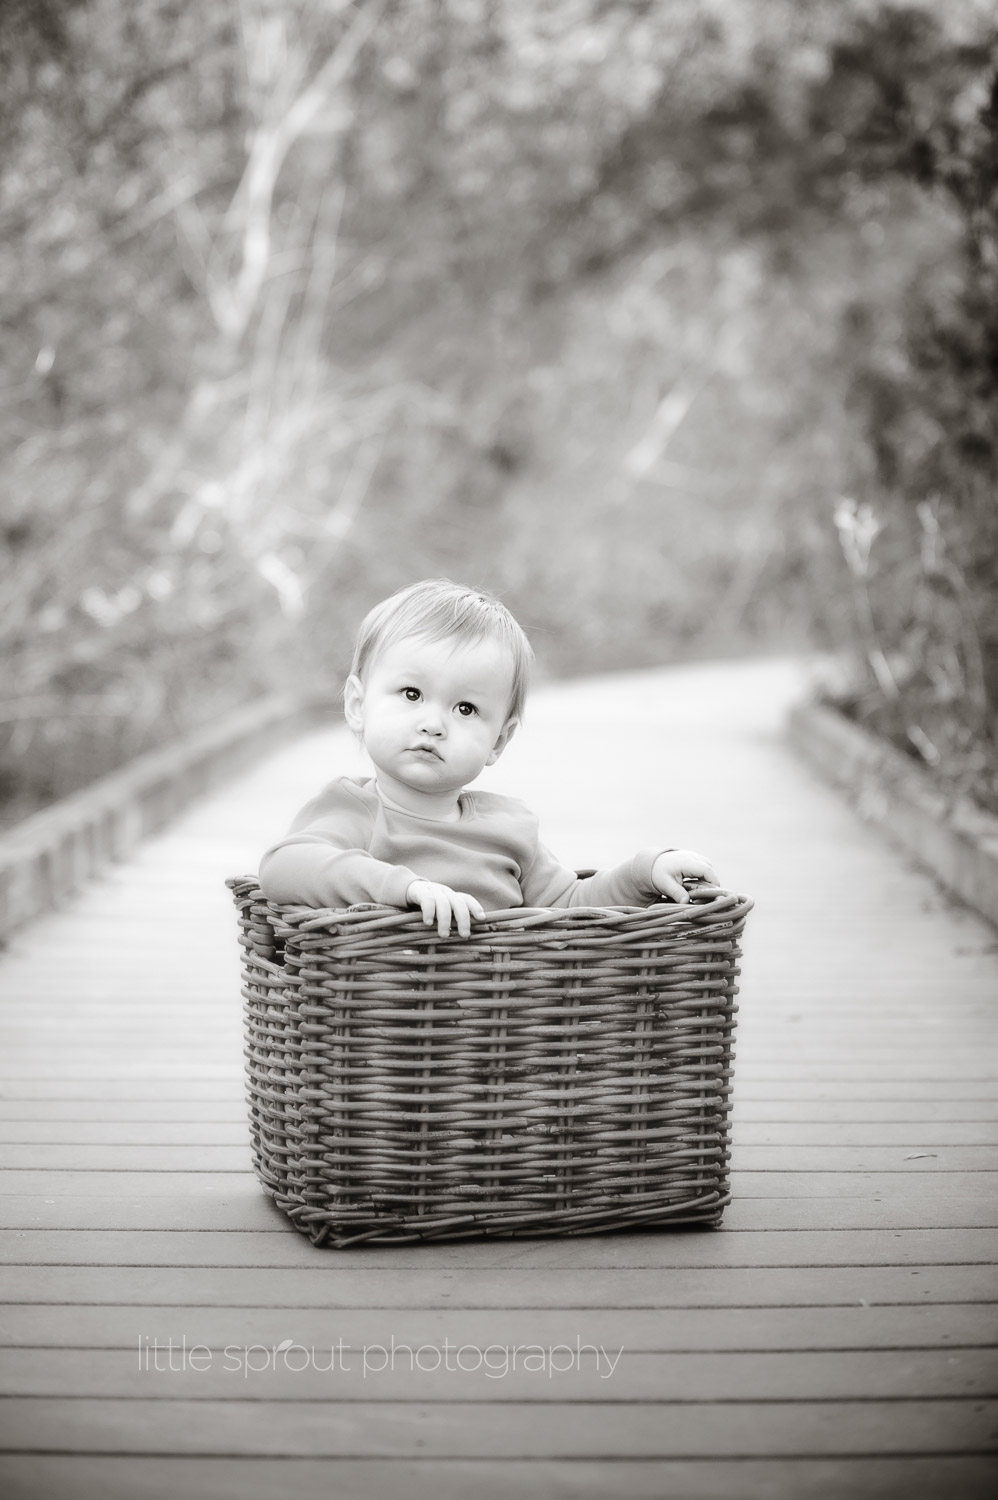 little-sprout-photography-babies-18.jpg